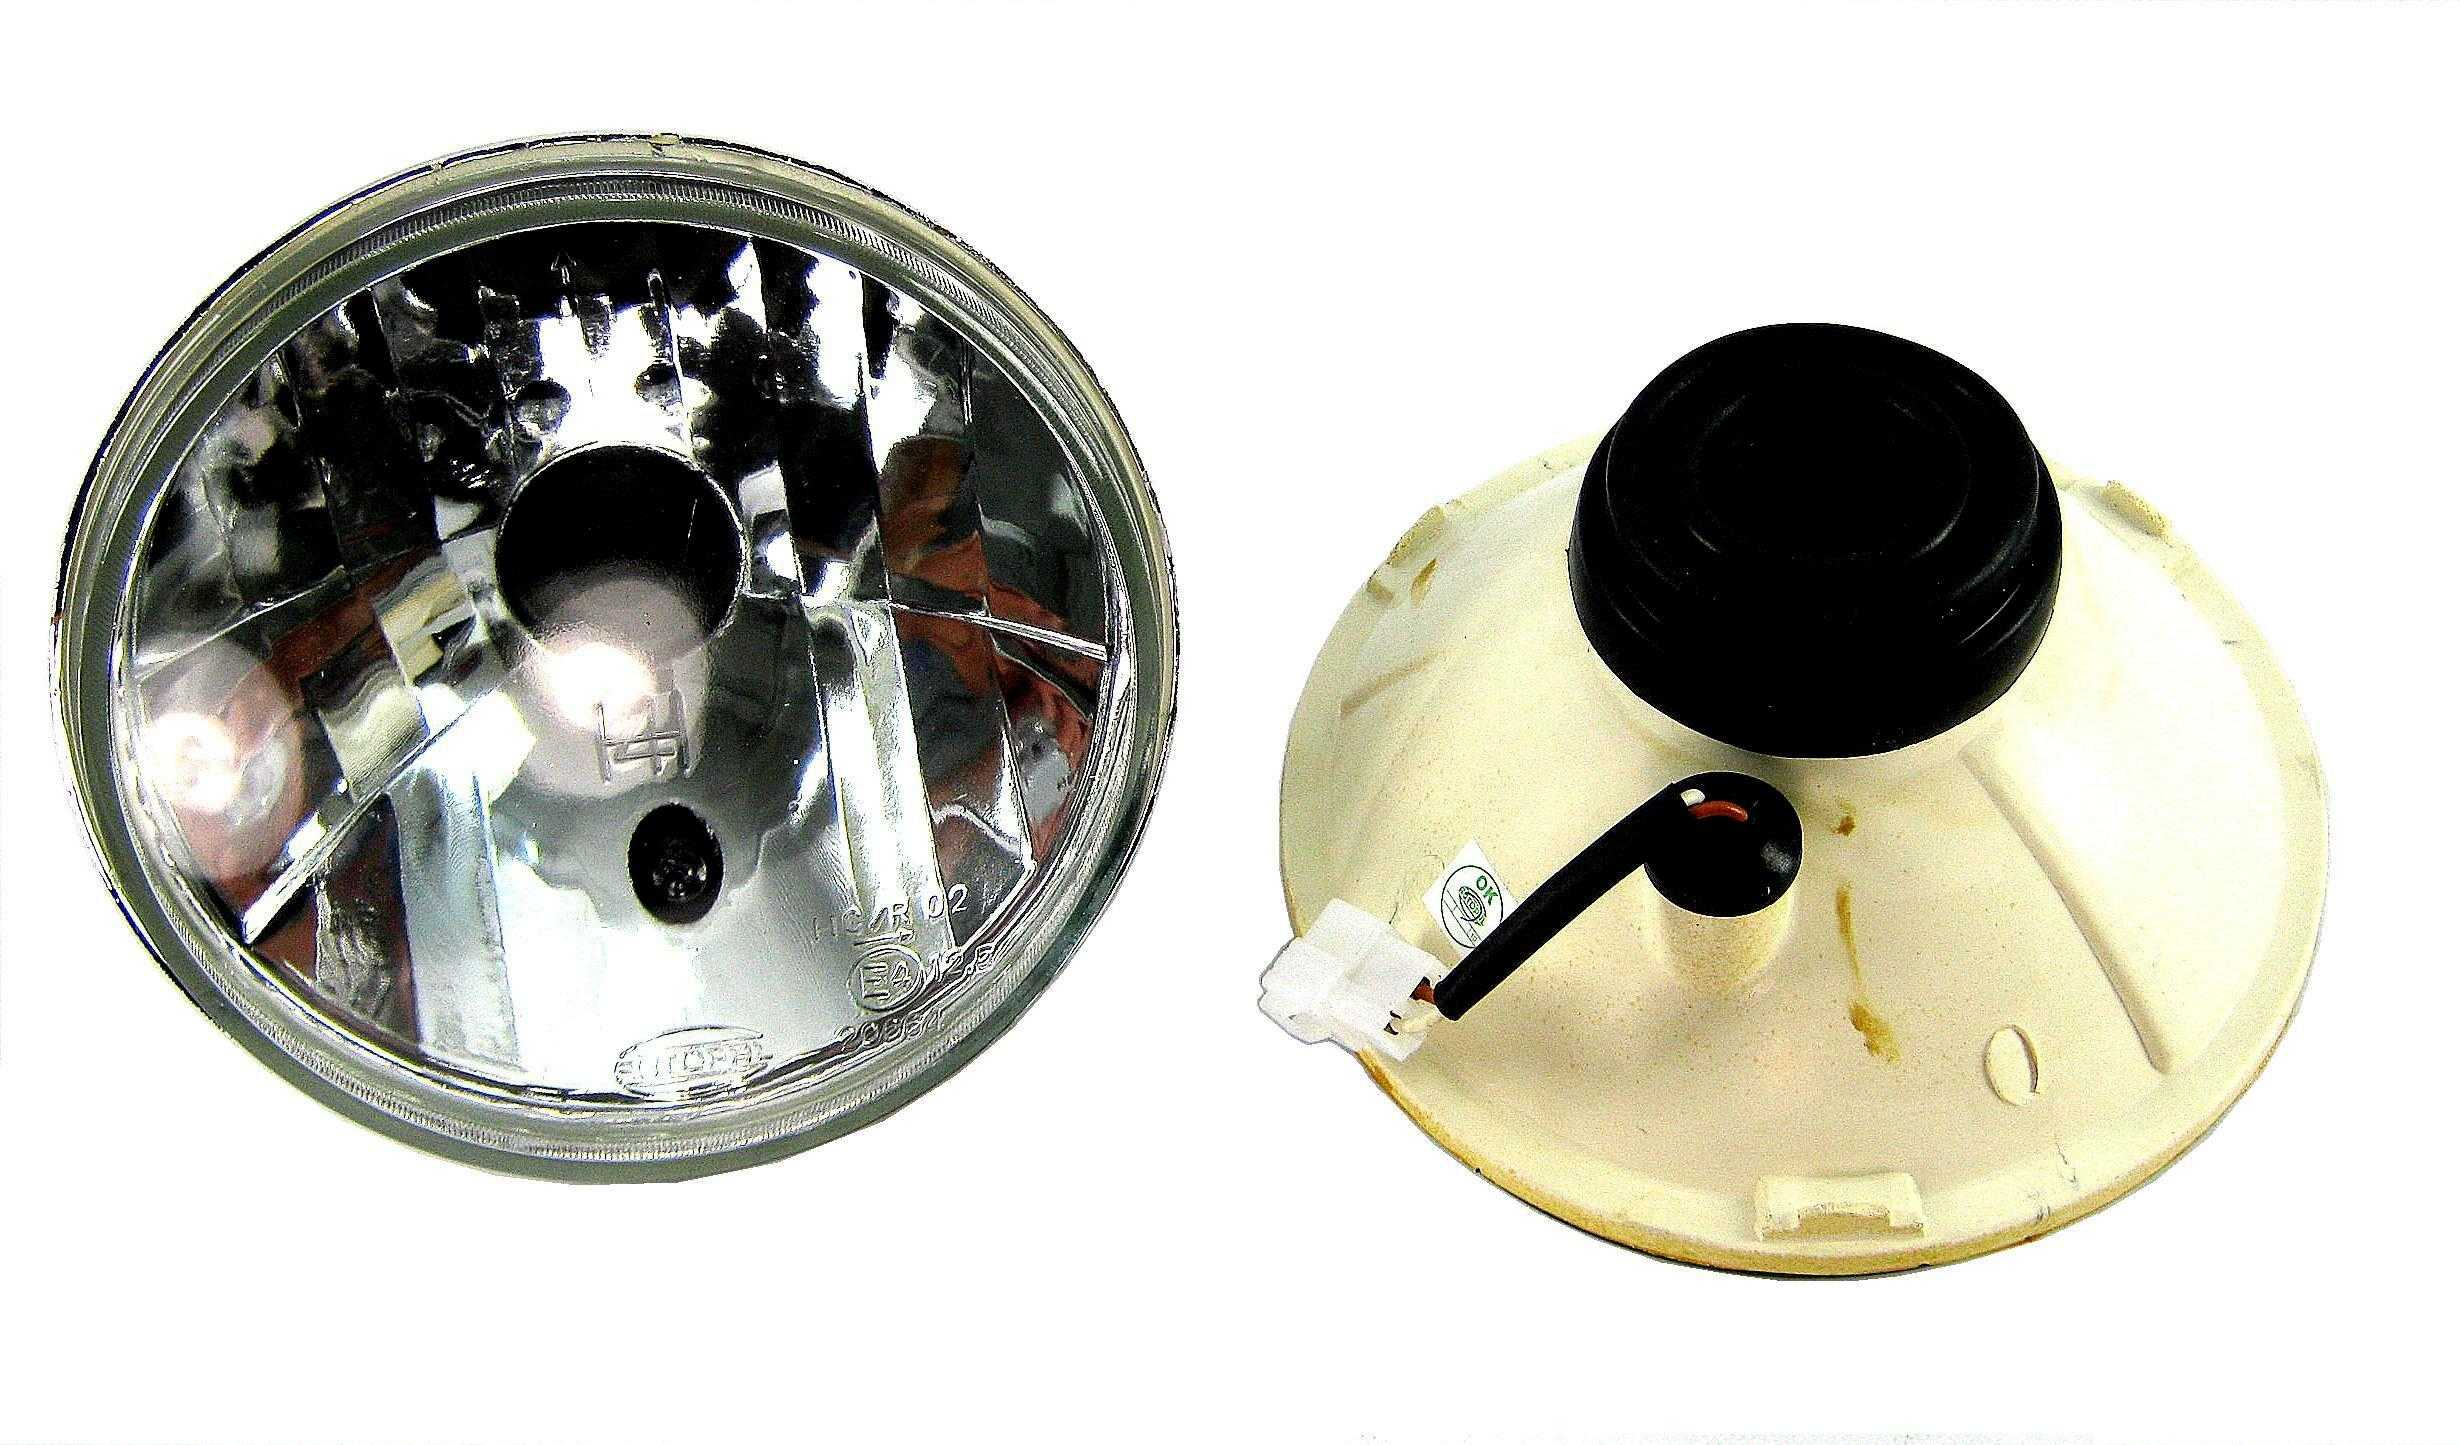 eBay.com.sg: Crystal Head lights Ford Cortina Mk1 Mk2 Mk3 lamps H4 (item